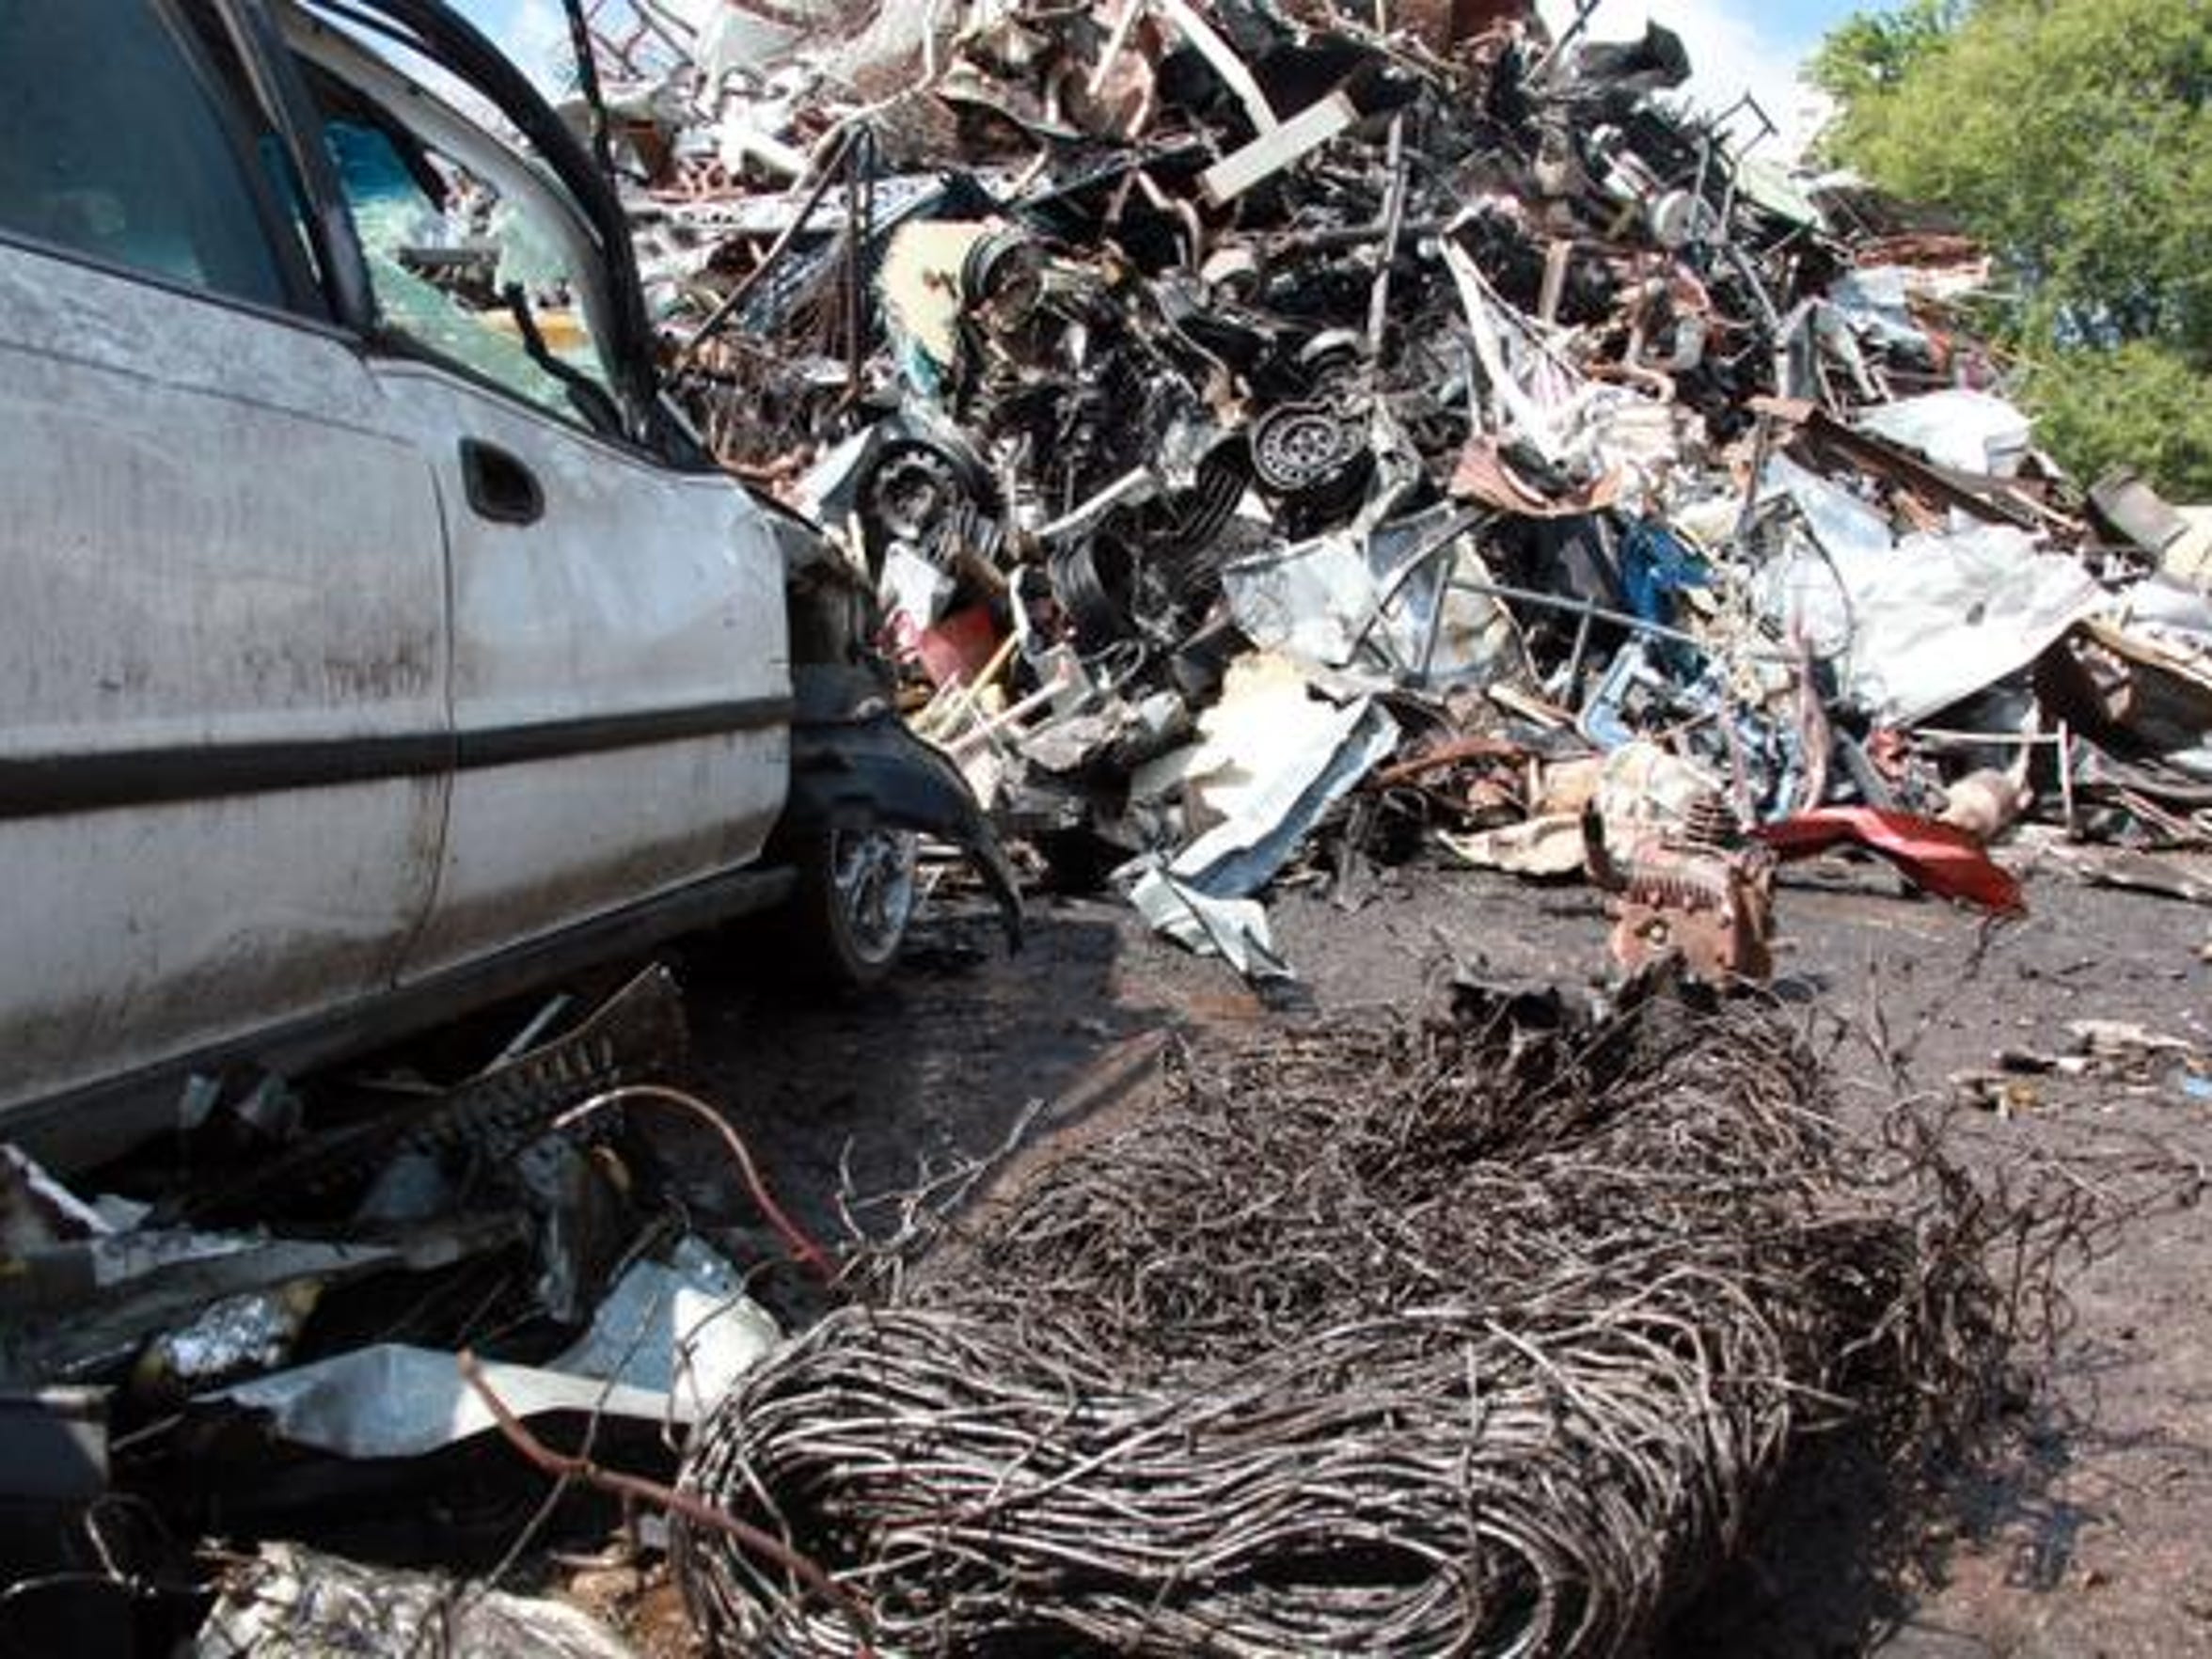 A junker car adds to the scrap heap at Recycle Management in East Waynesboro on Saturday, September 12. The Harrisonburg-based company grew an operation here a few years ago that's doing a thriving business providing cash for anything from old stoves to sofa springs.